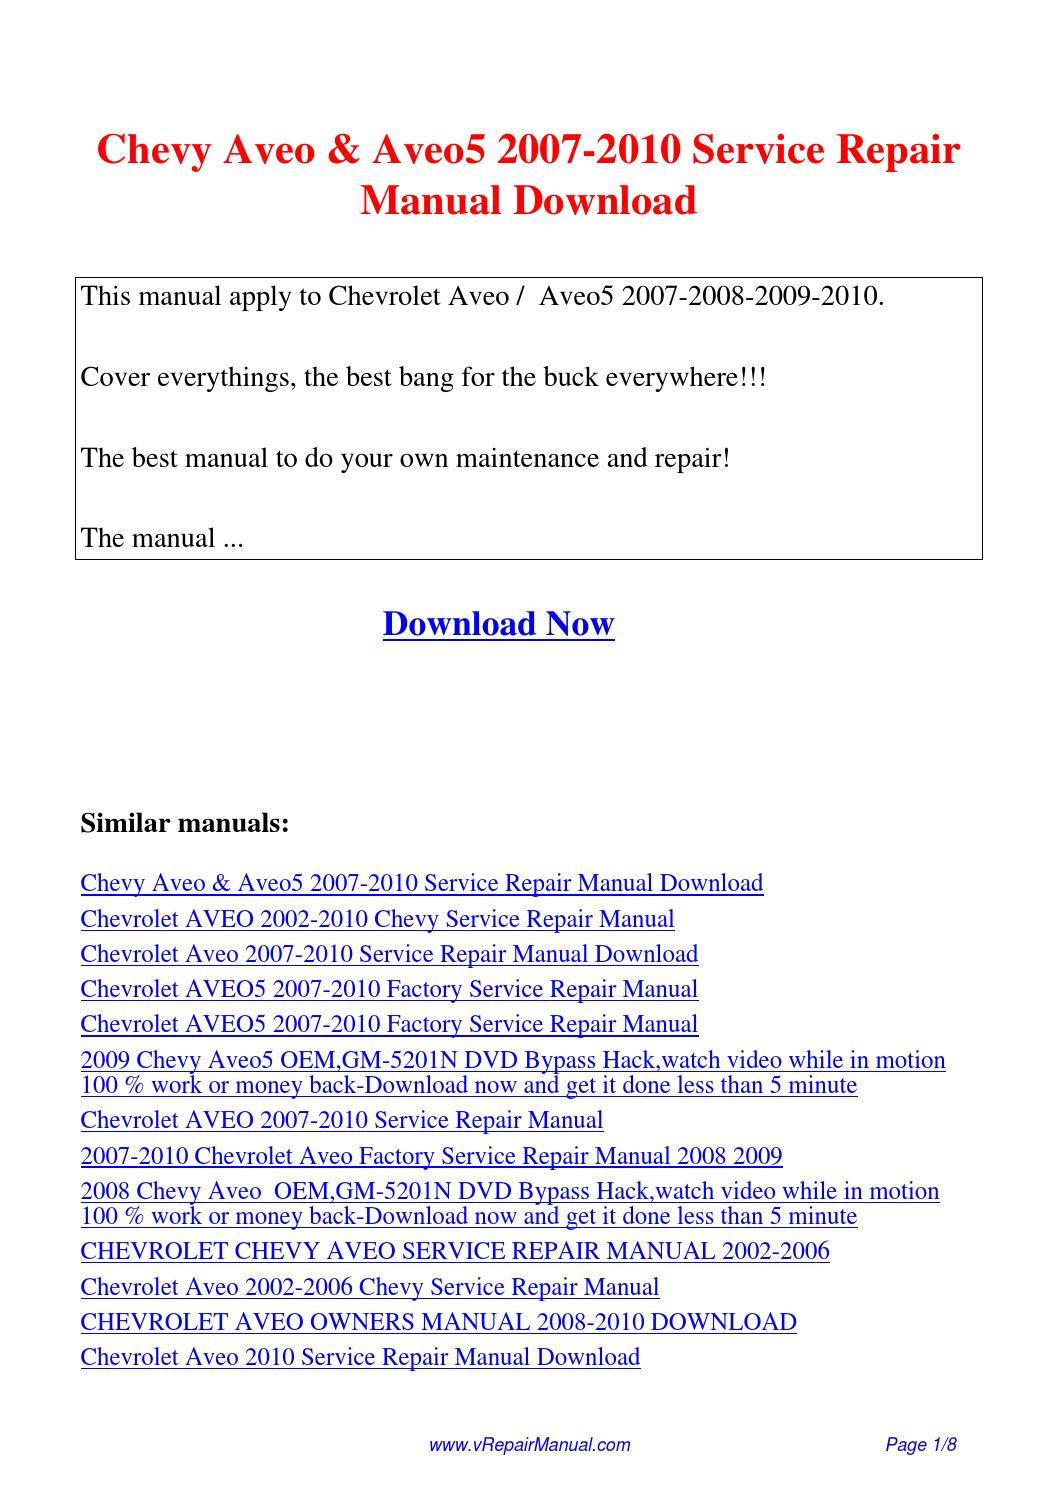 Chevy Aveo Aveo5 2007-2010 Service Repair Manual.pdf by David Zhang - issuu